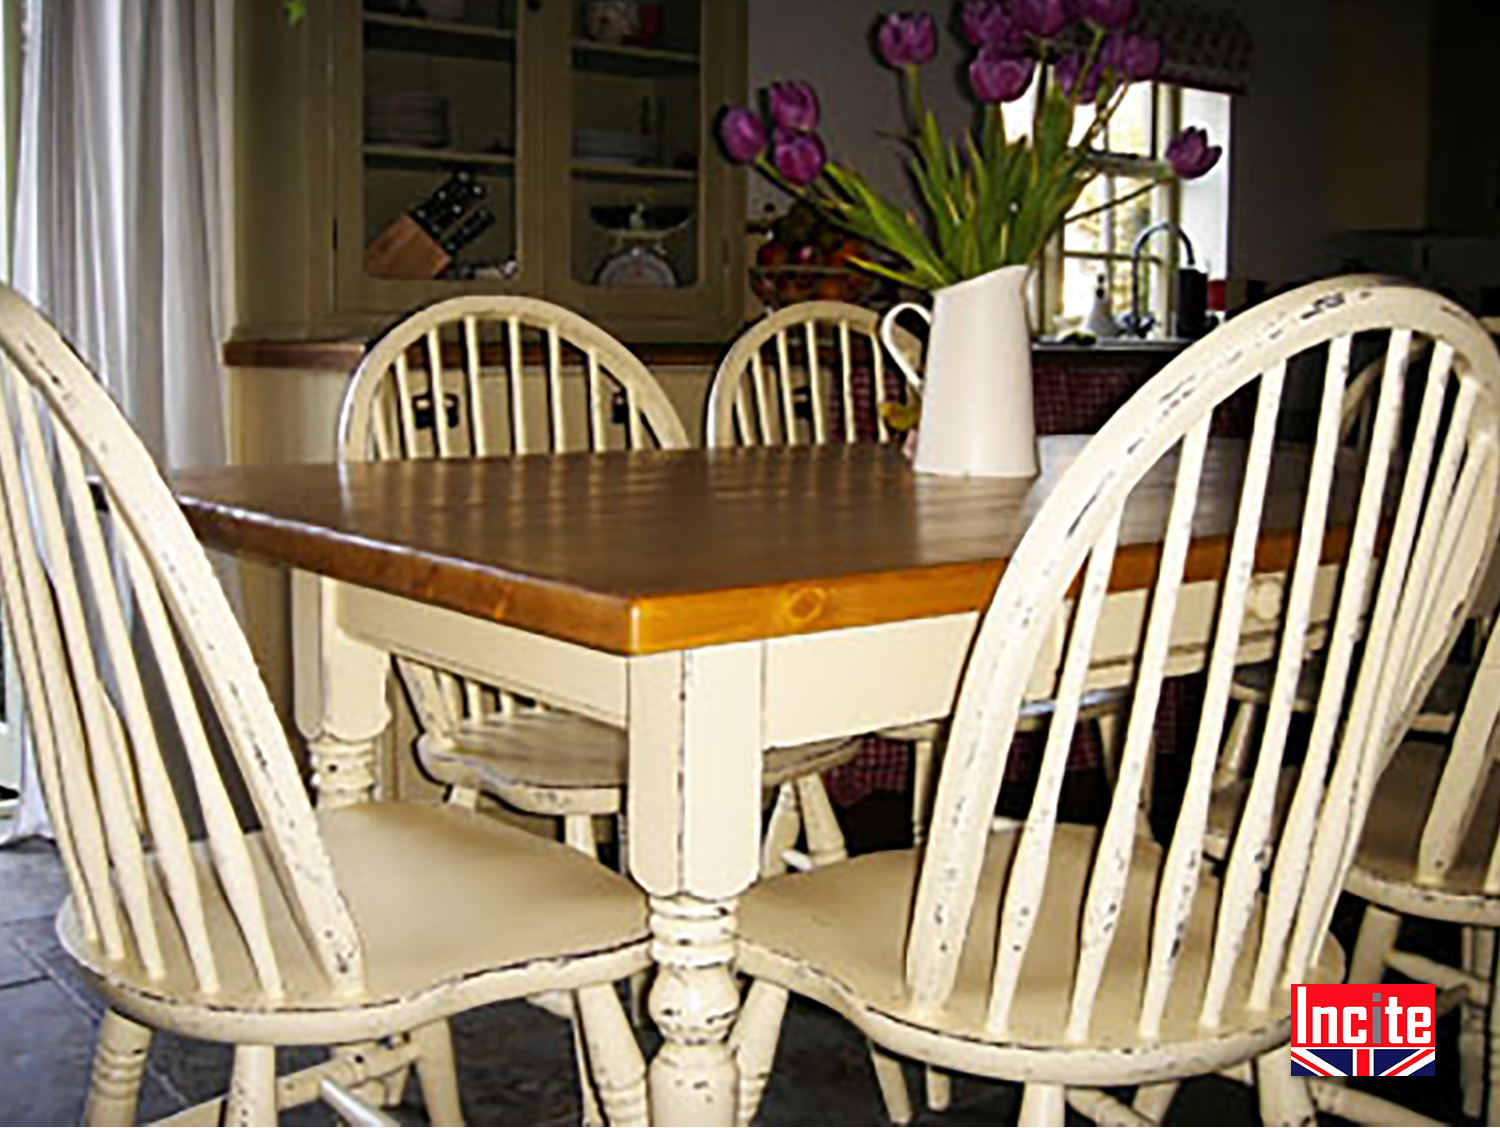 Distressed painted dining tables handmade by incite derby - Painted dining tables distressed ...